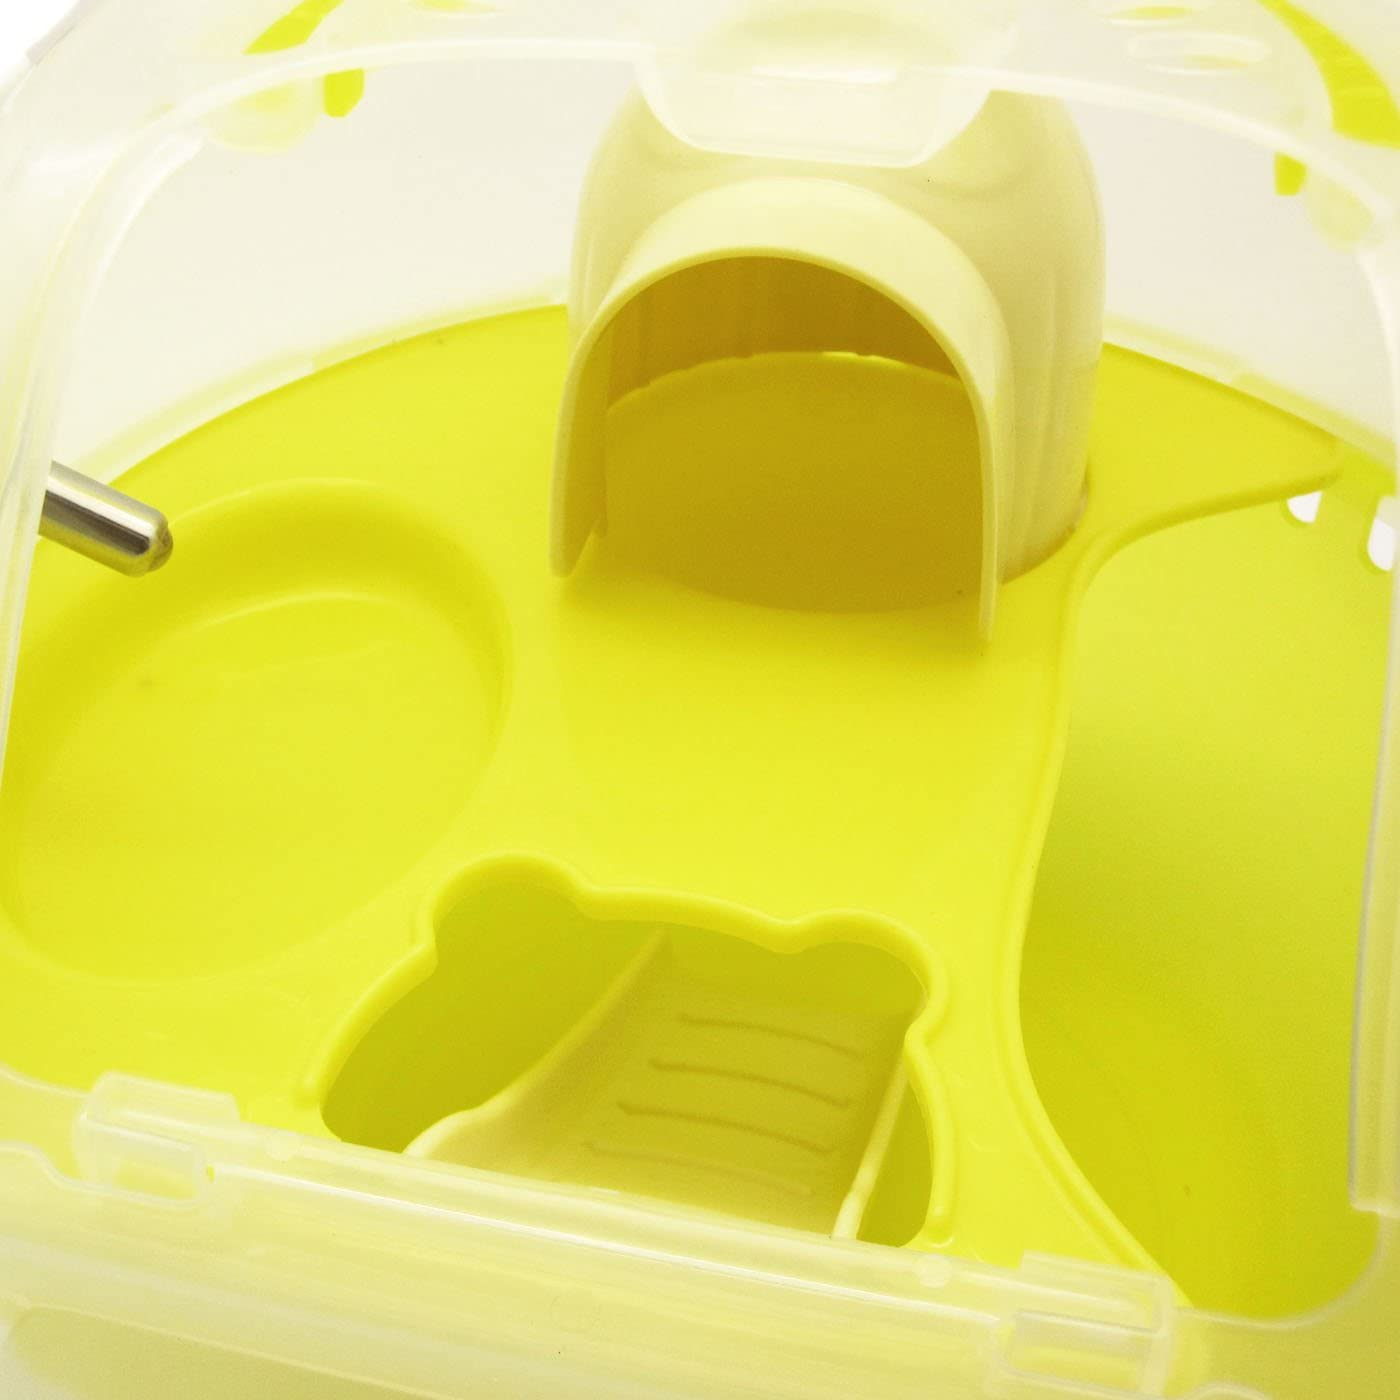 Alfie Pet Travi Travel Carrier Vacation House for Small Animals Like Dwarf Hamster and Mouse